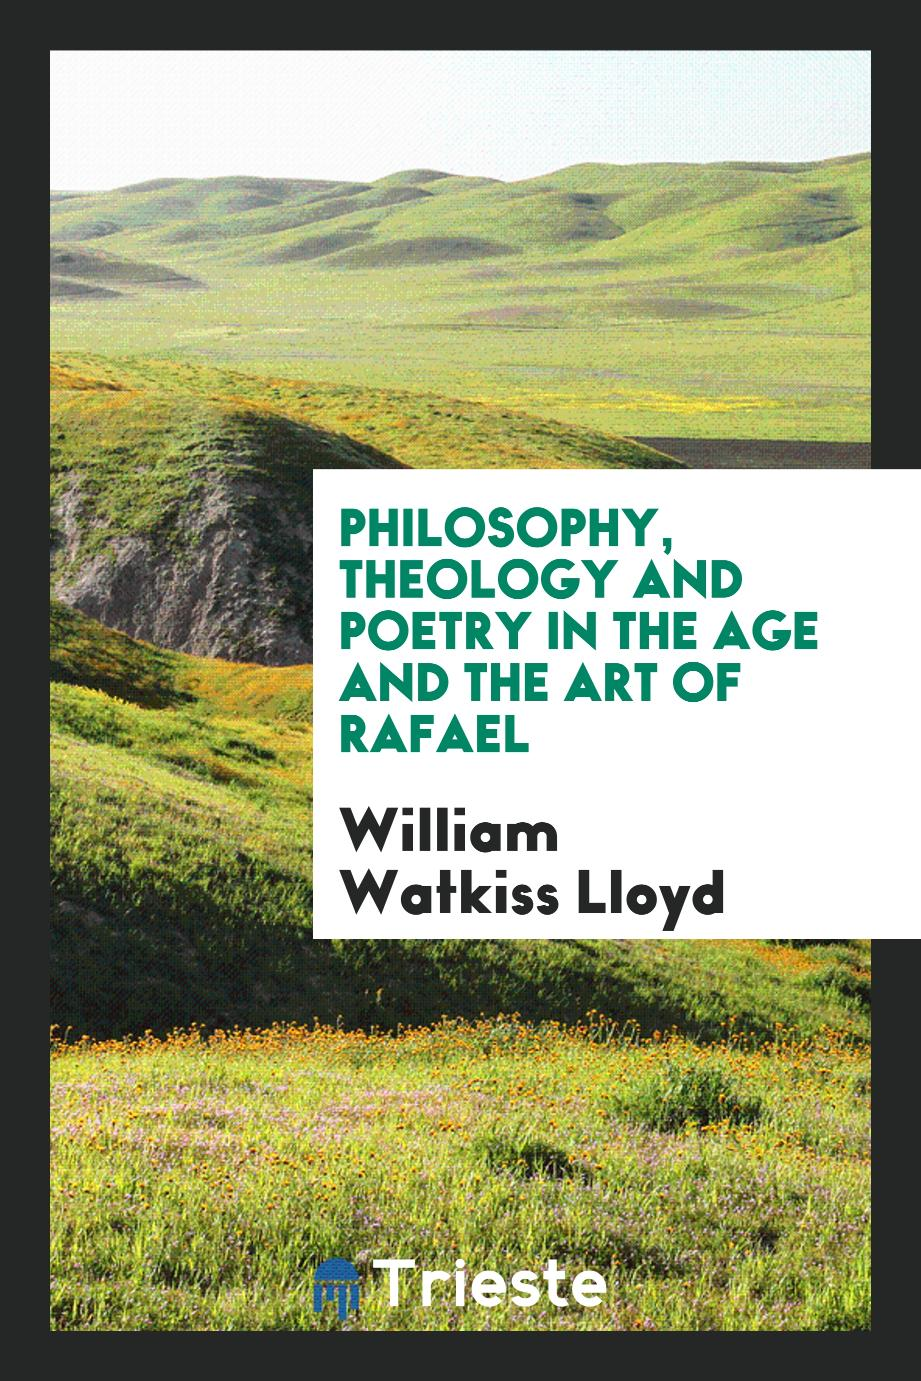 Philosophy, Theology and Poetry in the Age and the Art of Rafael